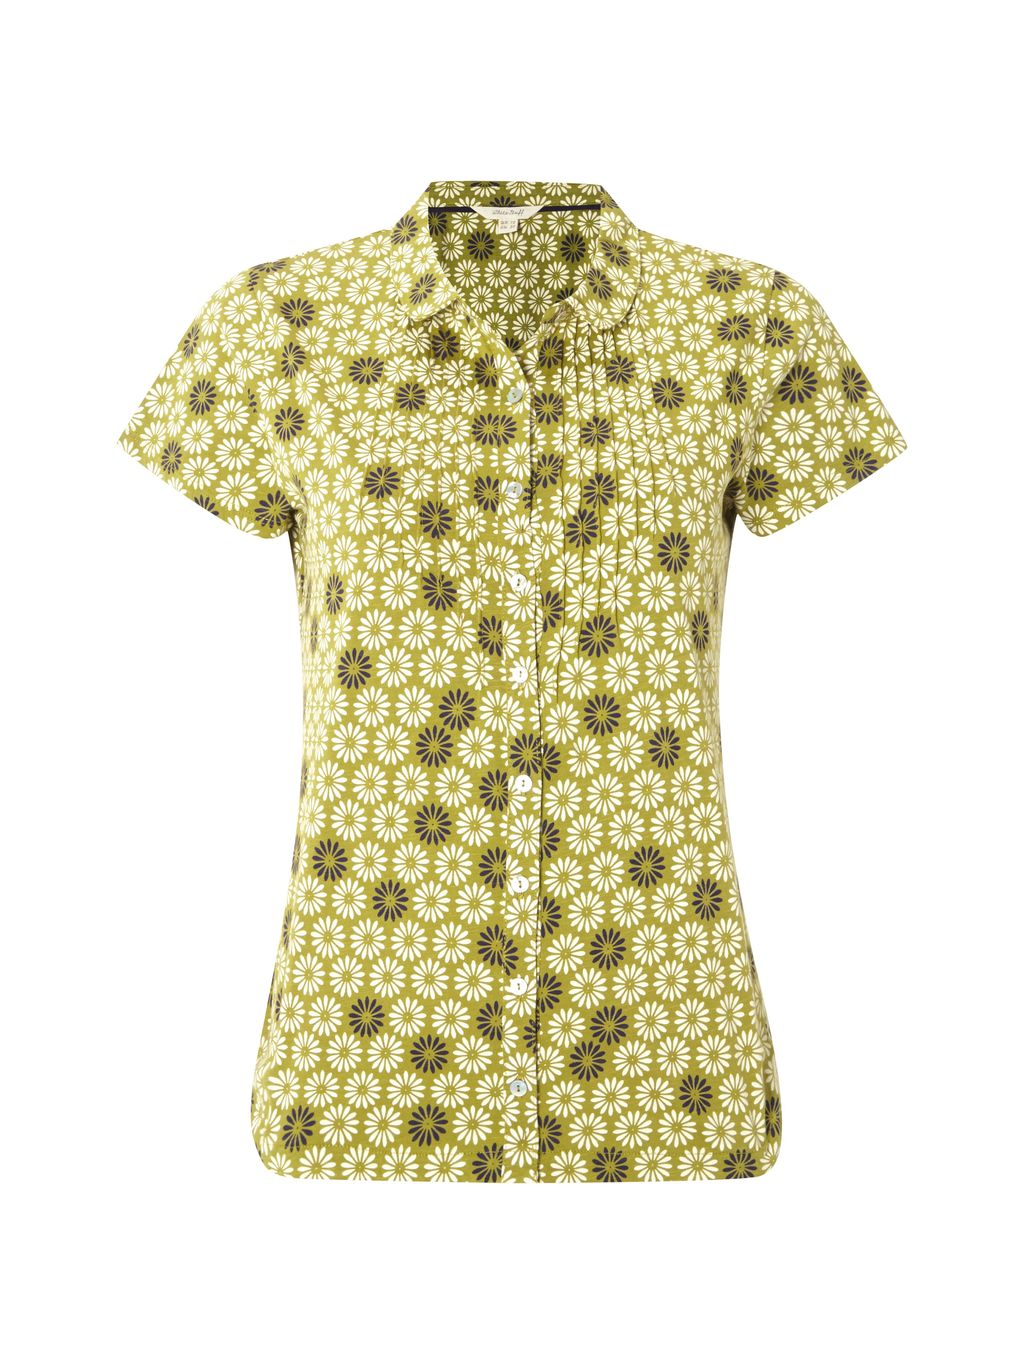 Daisy Jersey Shirt, Green - neckline: shirt collar/peter pan/zip with opening; style: shirt; secondary colour: primrose yellow; predominant colour: khaki; occasions: casual; length: standard; fibres: cotton - 100%; fit: body skimming; sleeve length: short sleeve; sleeve style: standard; texture group: cotton feel fabrics; pattern type: fabric; pattern: florals; multicoloured: multicoloured; season: s/s 2016; wardrobe: highlight